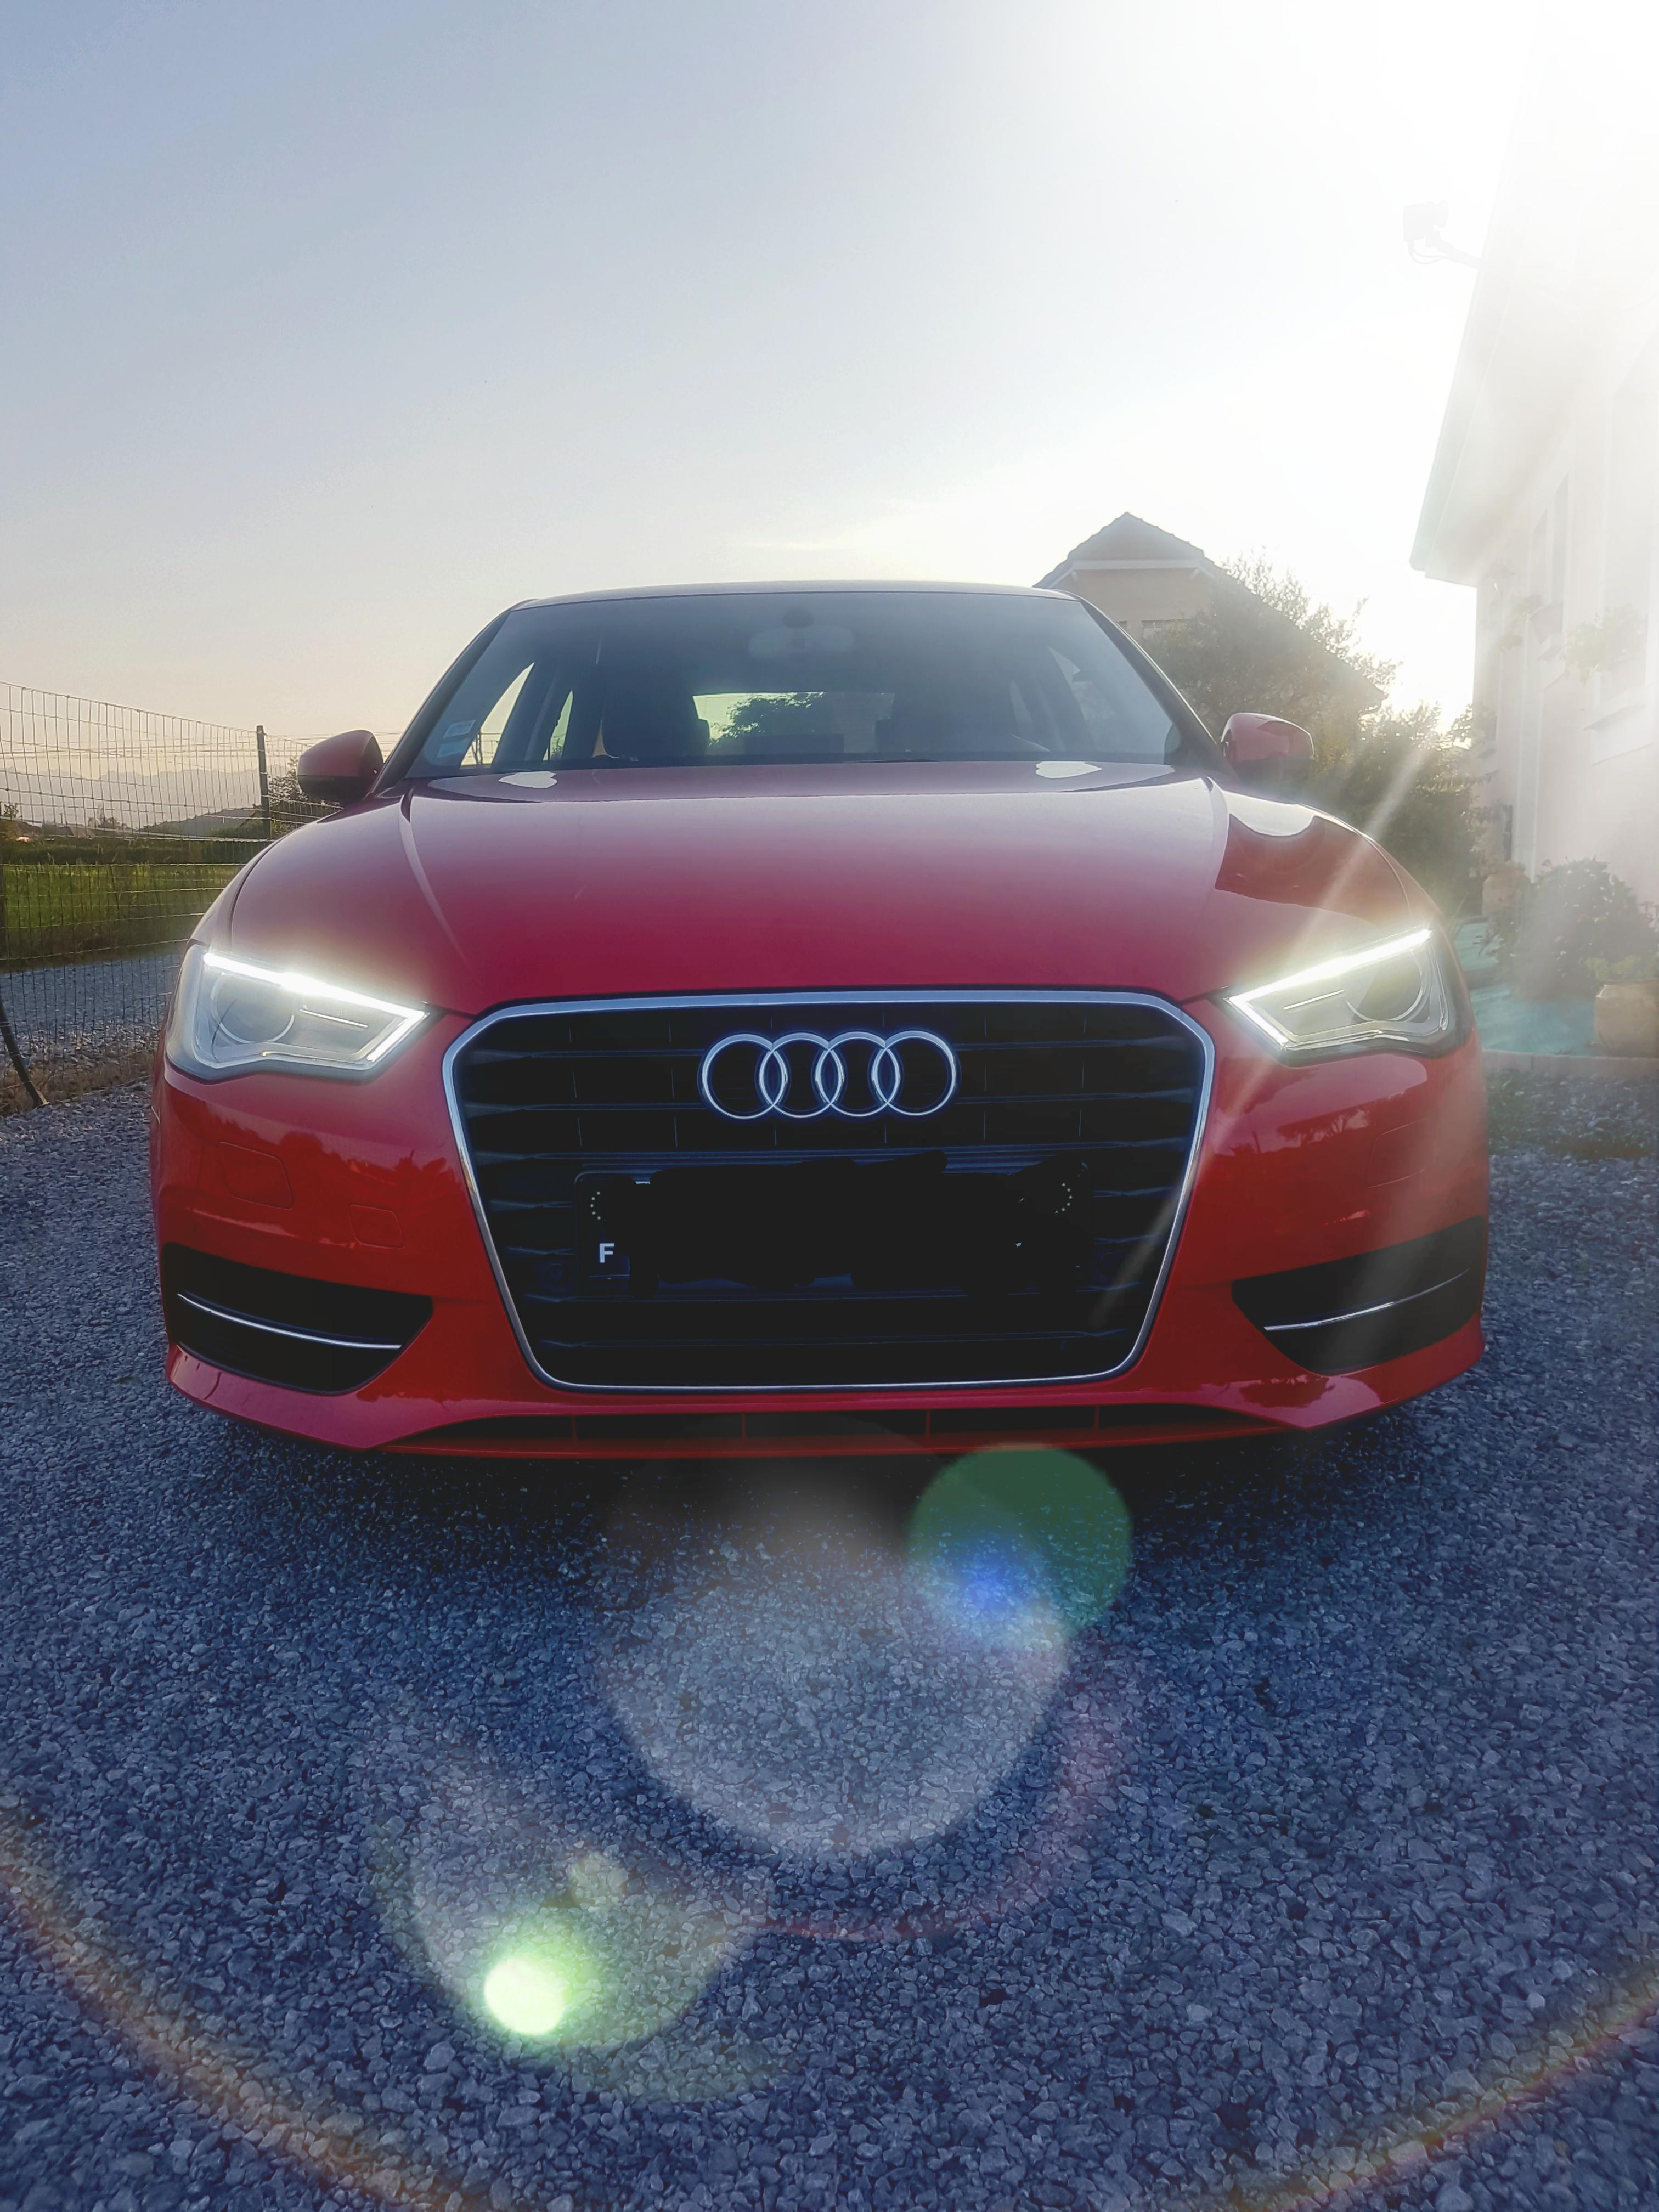 Audi A3 Rouge Mika6401 2 Tdi 150 Stronic Rouge New Garages